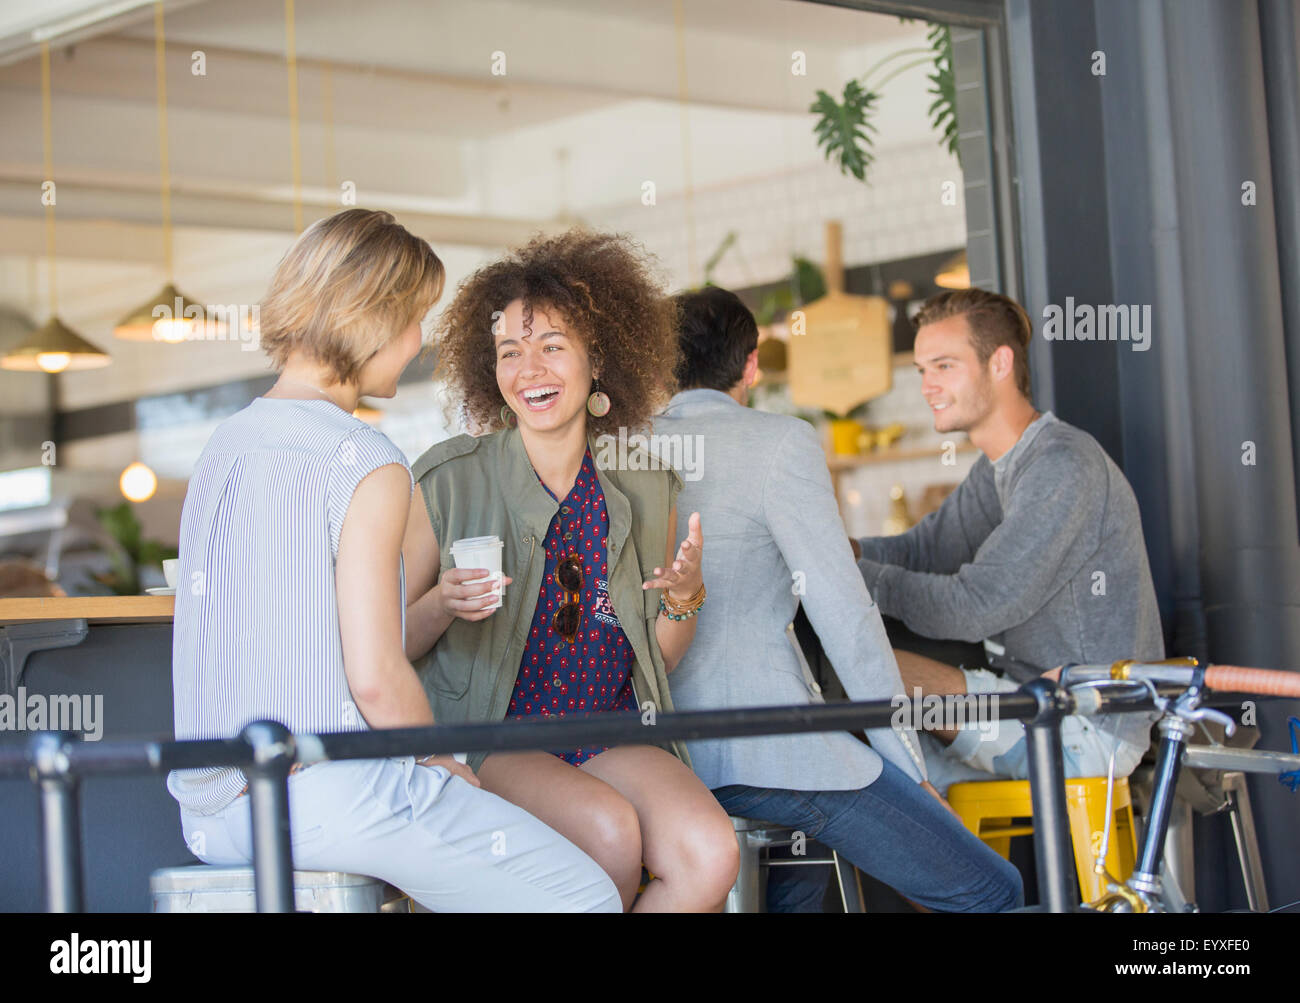 Laughing friends hanging out drinking coffee on cafe patio - Stock Image